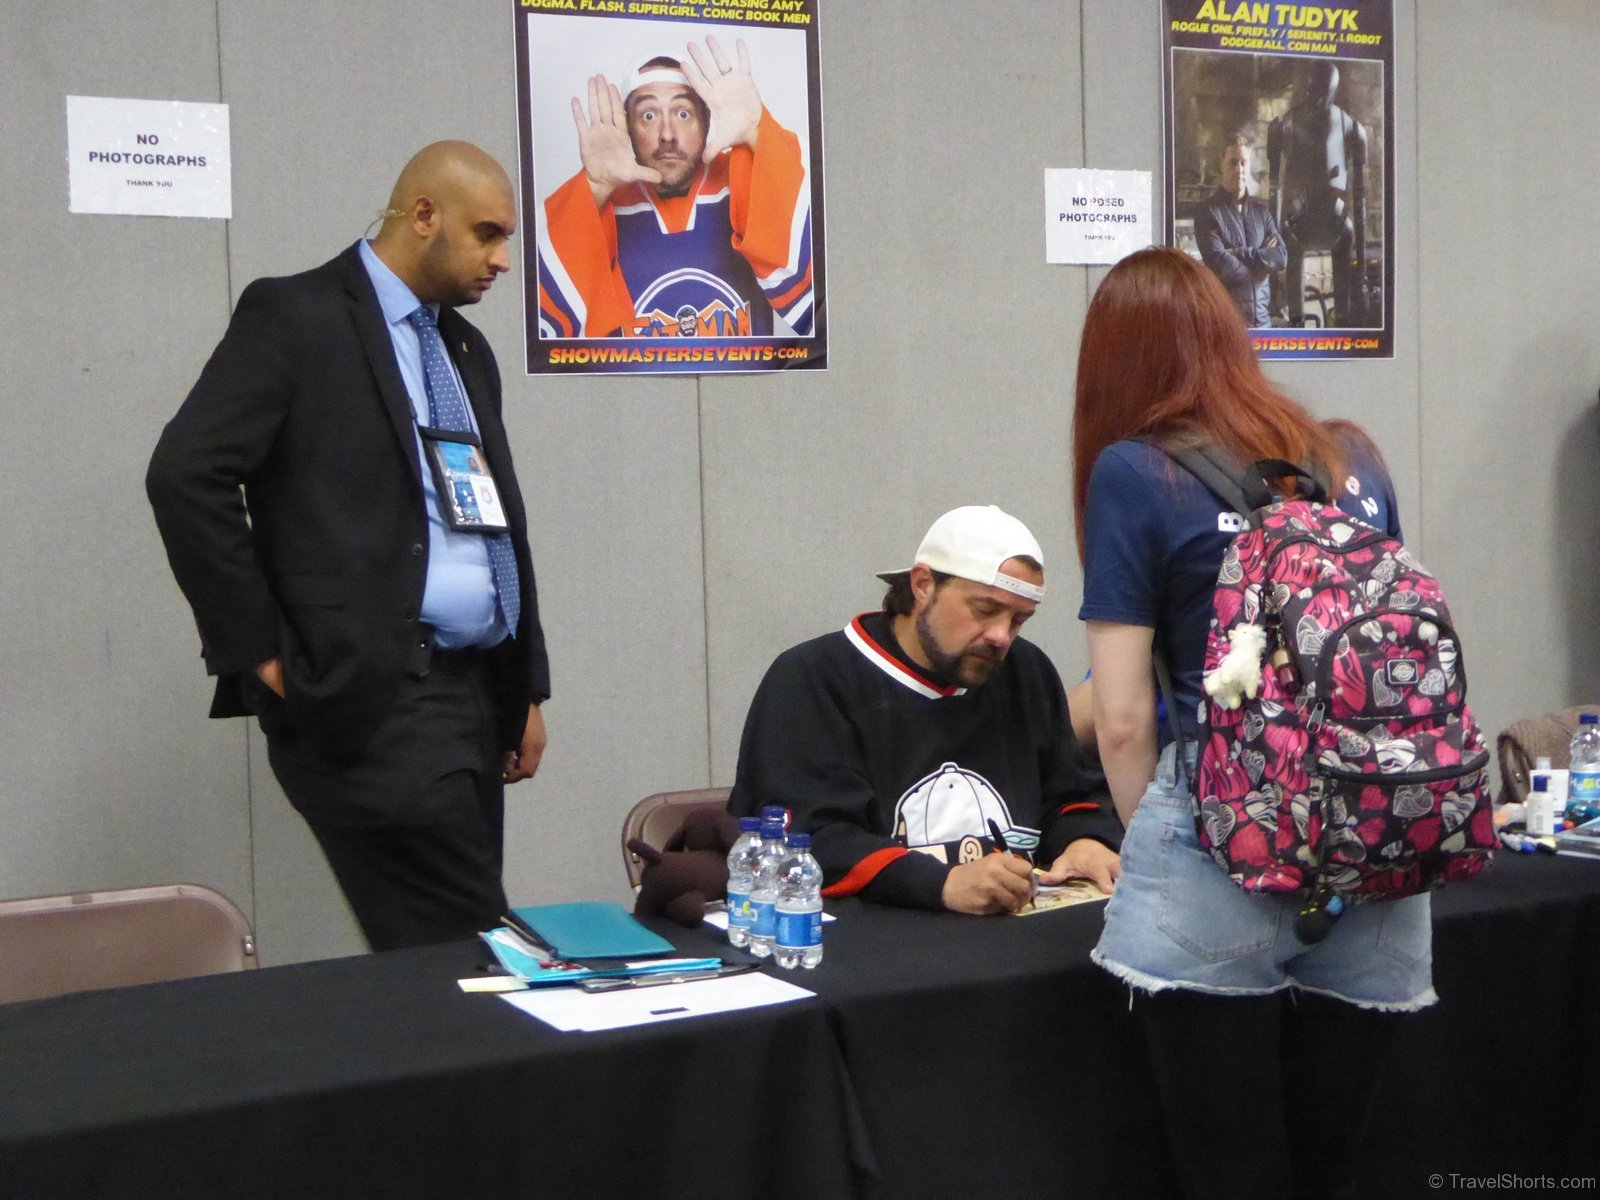 Kevin-Smith-Signing-Autographs-2JPG